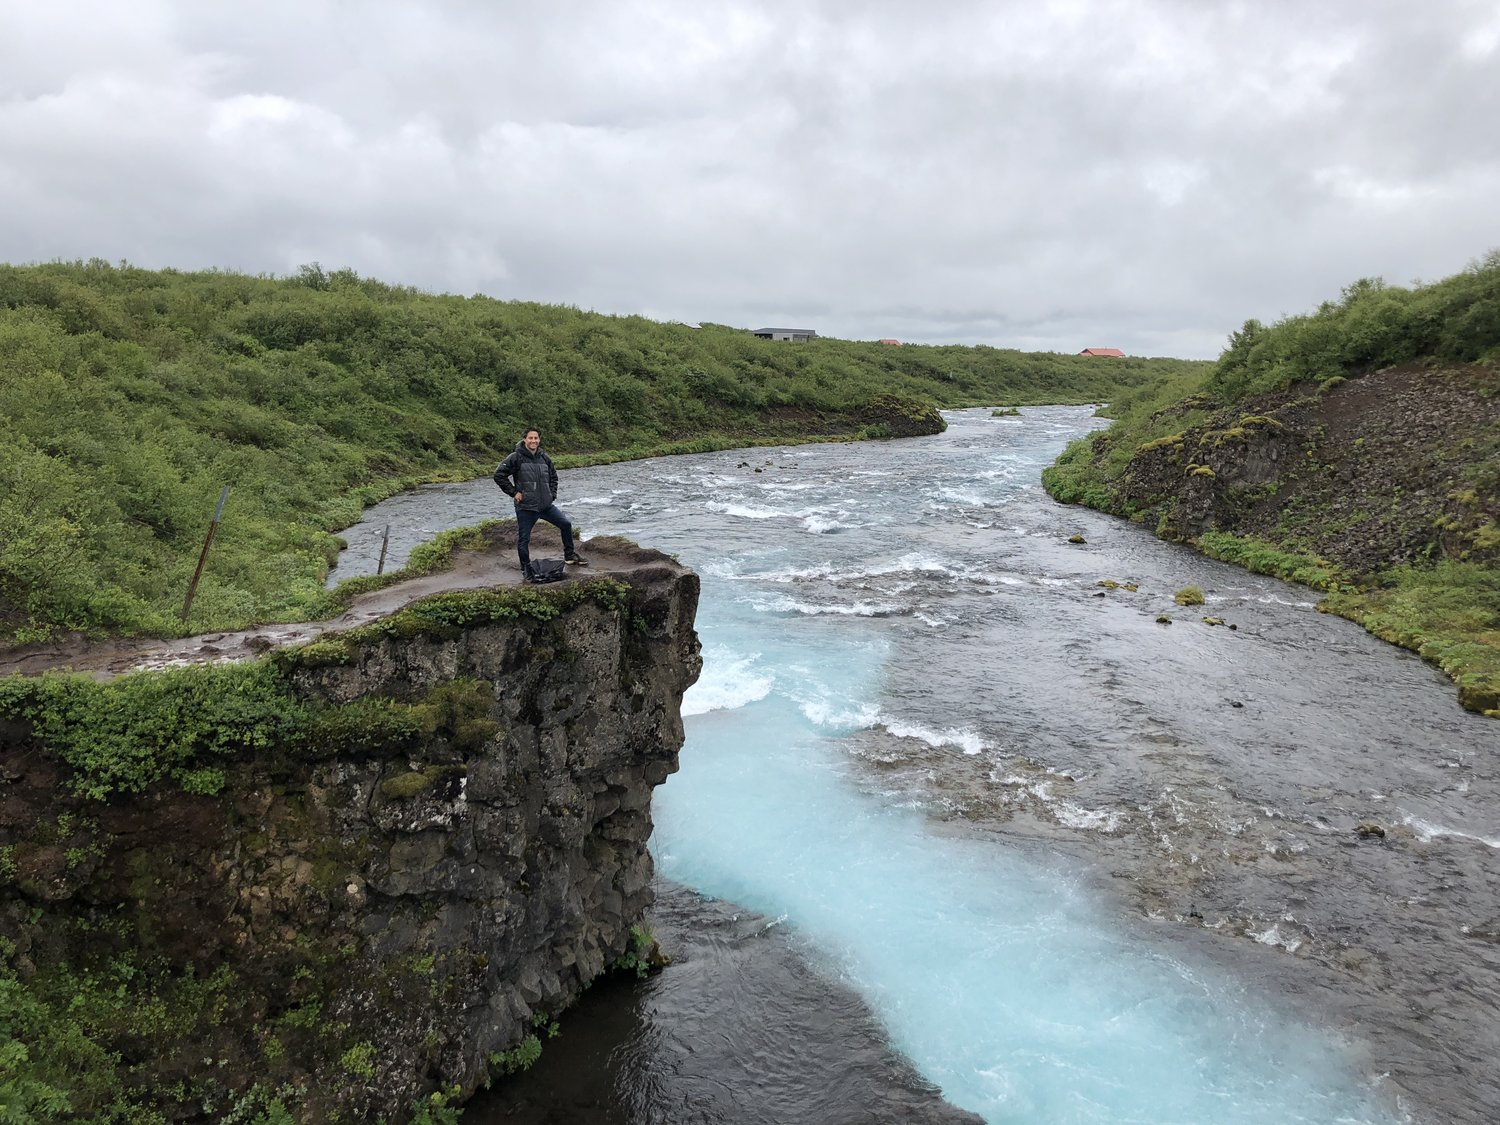 This is me seeing a landscape. Some of the water is clearer than the rest, and one can travel through these complicated waters if one is careful. See what I did there? So clever. (This picture funded by Iceland's Department of Tourism). (Not really).